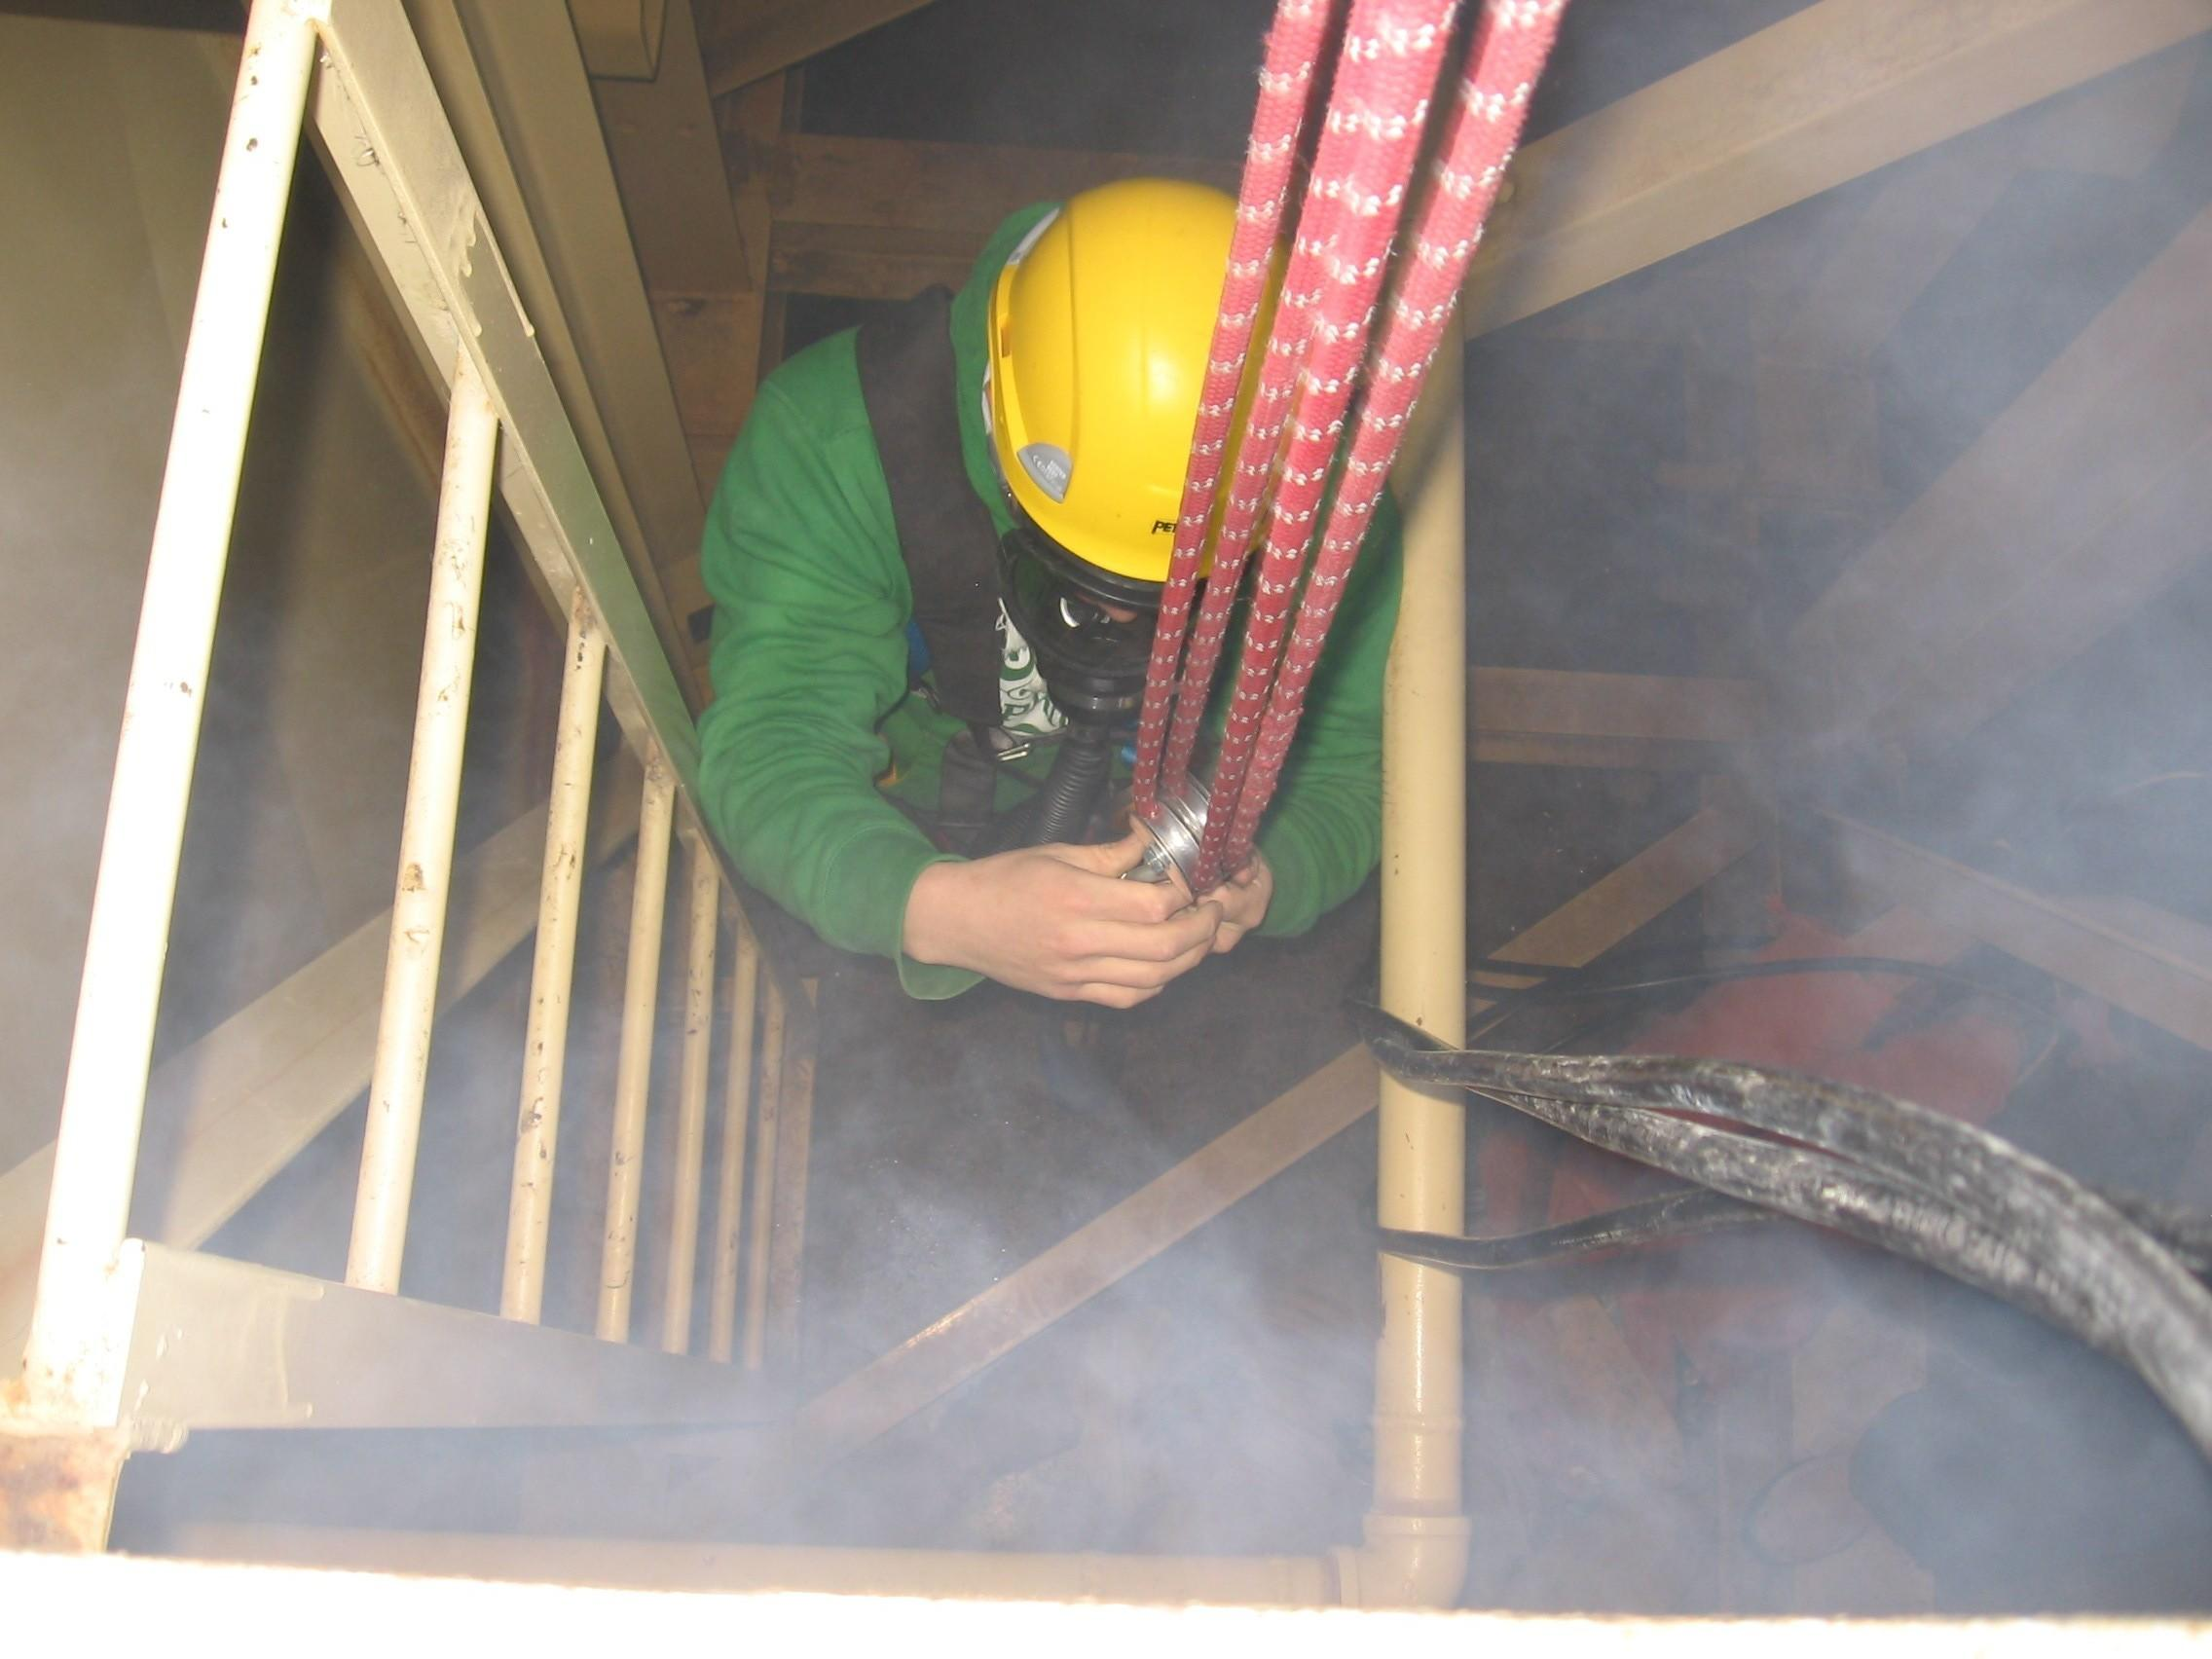 OSSA Confined Space Training: Understanding the Hazards of Confined Spaces